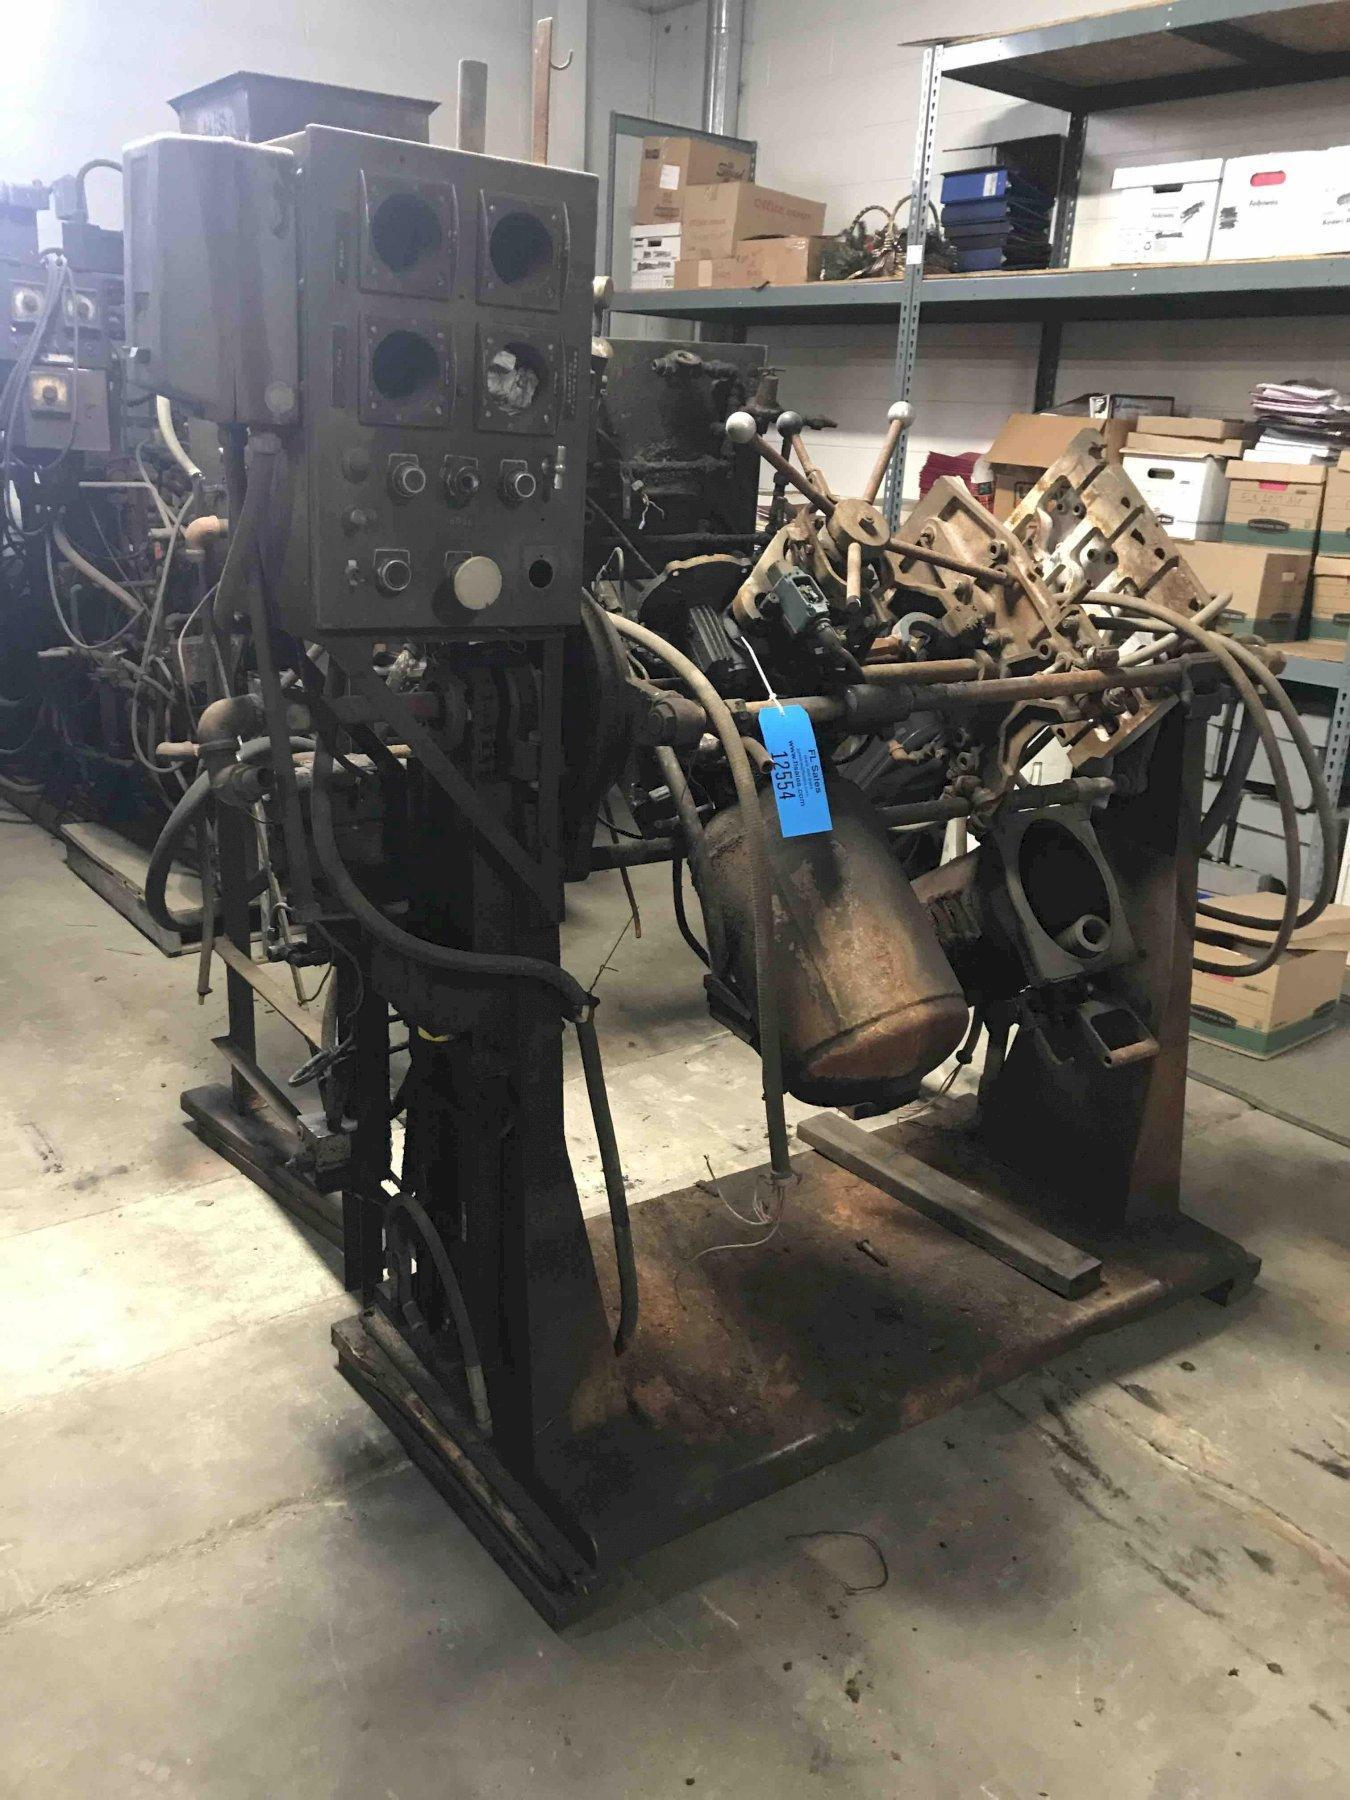 """Dependable model 200fa shell core machine no serial number 17 x 14"""" platen missing rollover motor"""